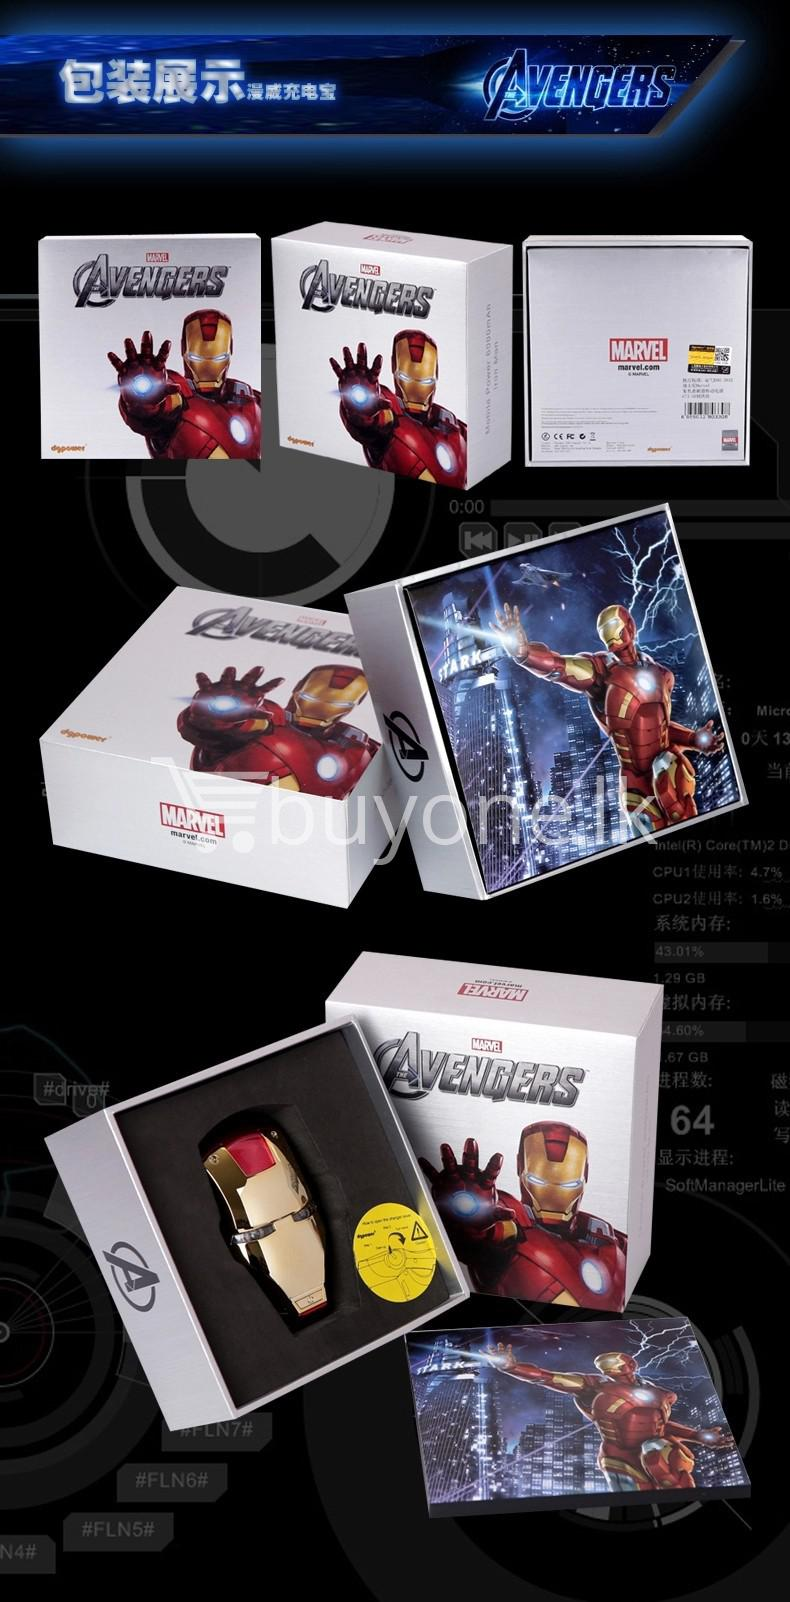 newest iron man portable power bank 6000mah for iphone samsung htc nokia oneplus mobile store special best offer buy one lk sri lanka 06541 - Newest Iron Man Portable Power Bank 6000mAh for iPhone, Samsung, HTC, Nokia, OnePlus